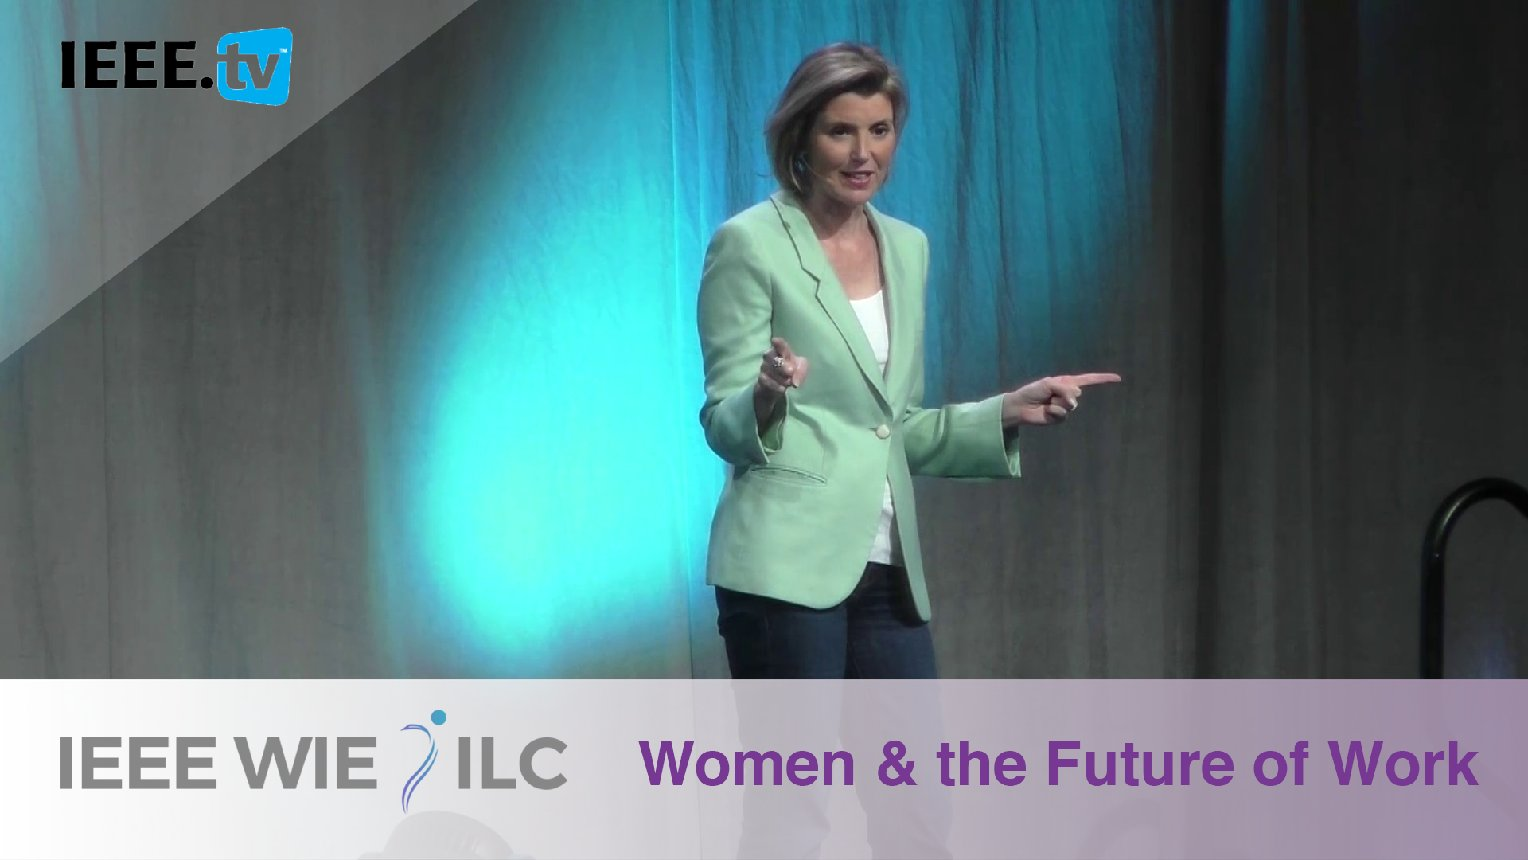 Women and the Future of Work with Keynote Sallie Krawcheck - IEEE WIE ILC 2017